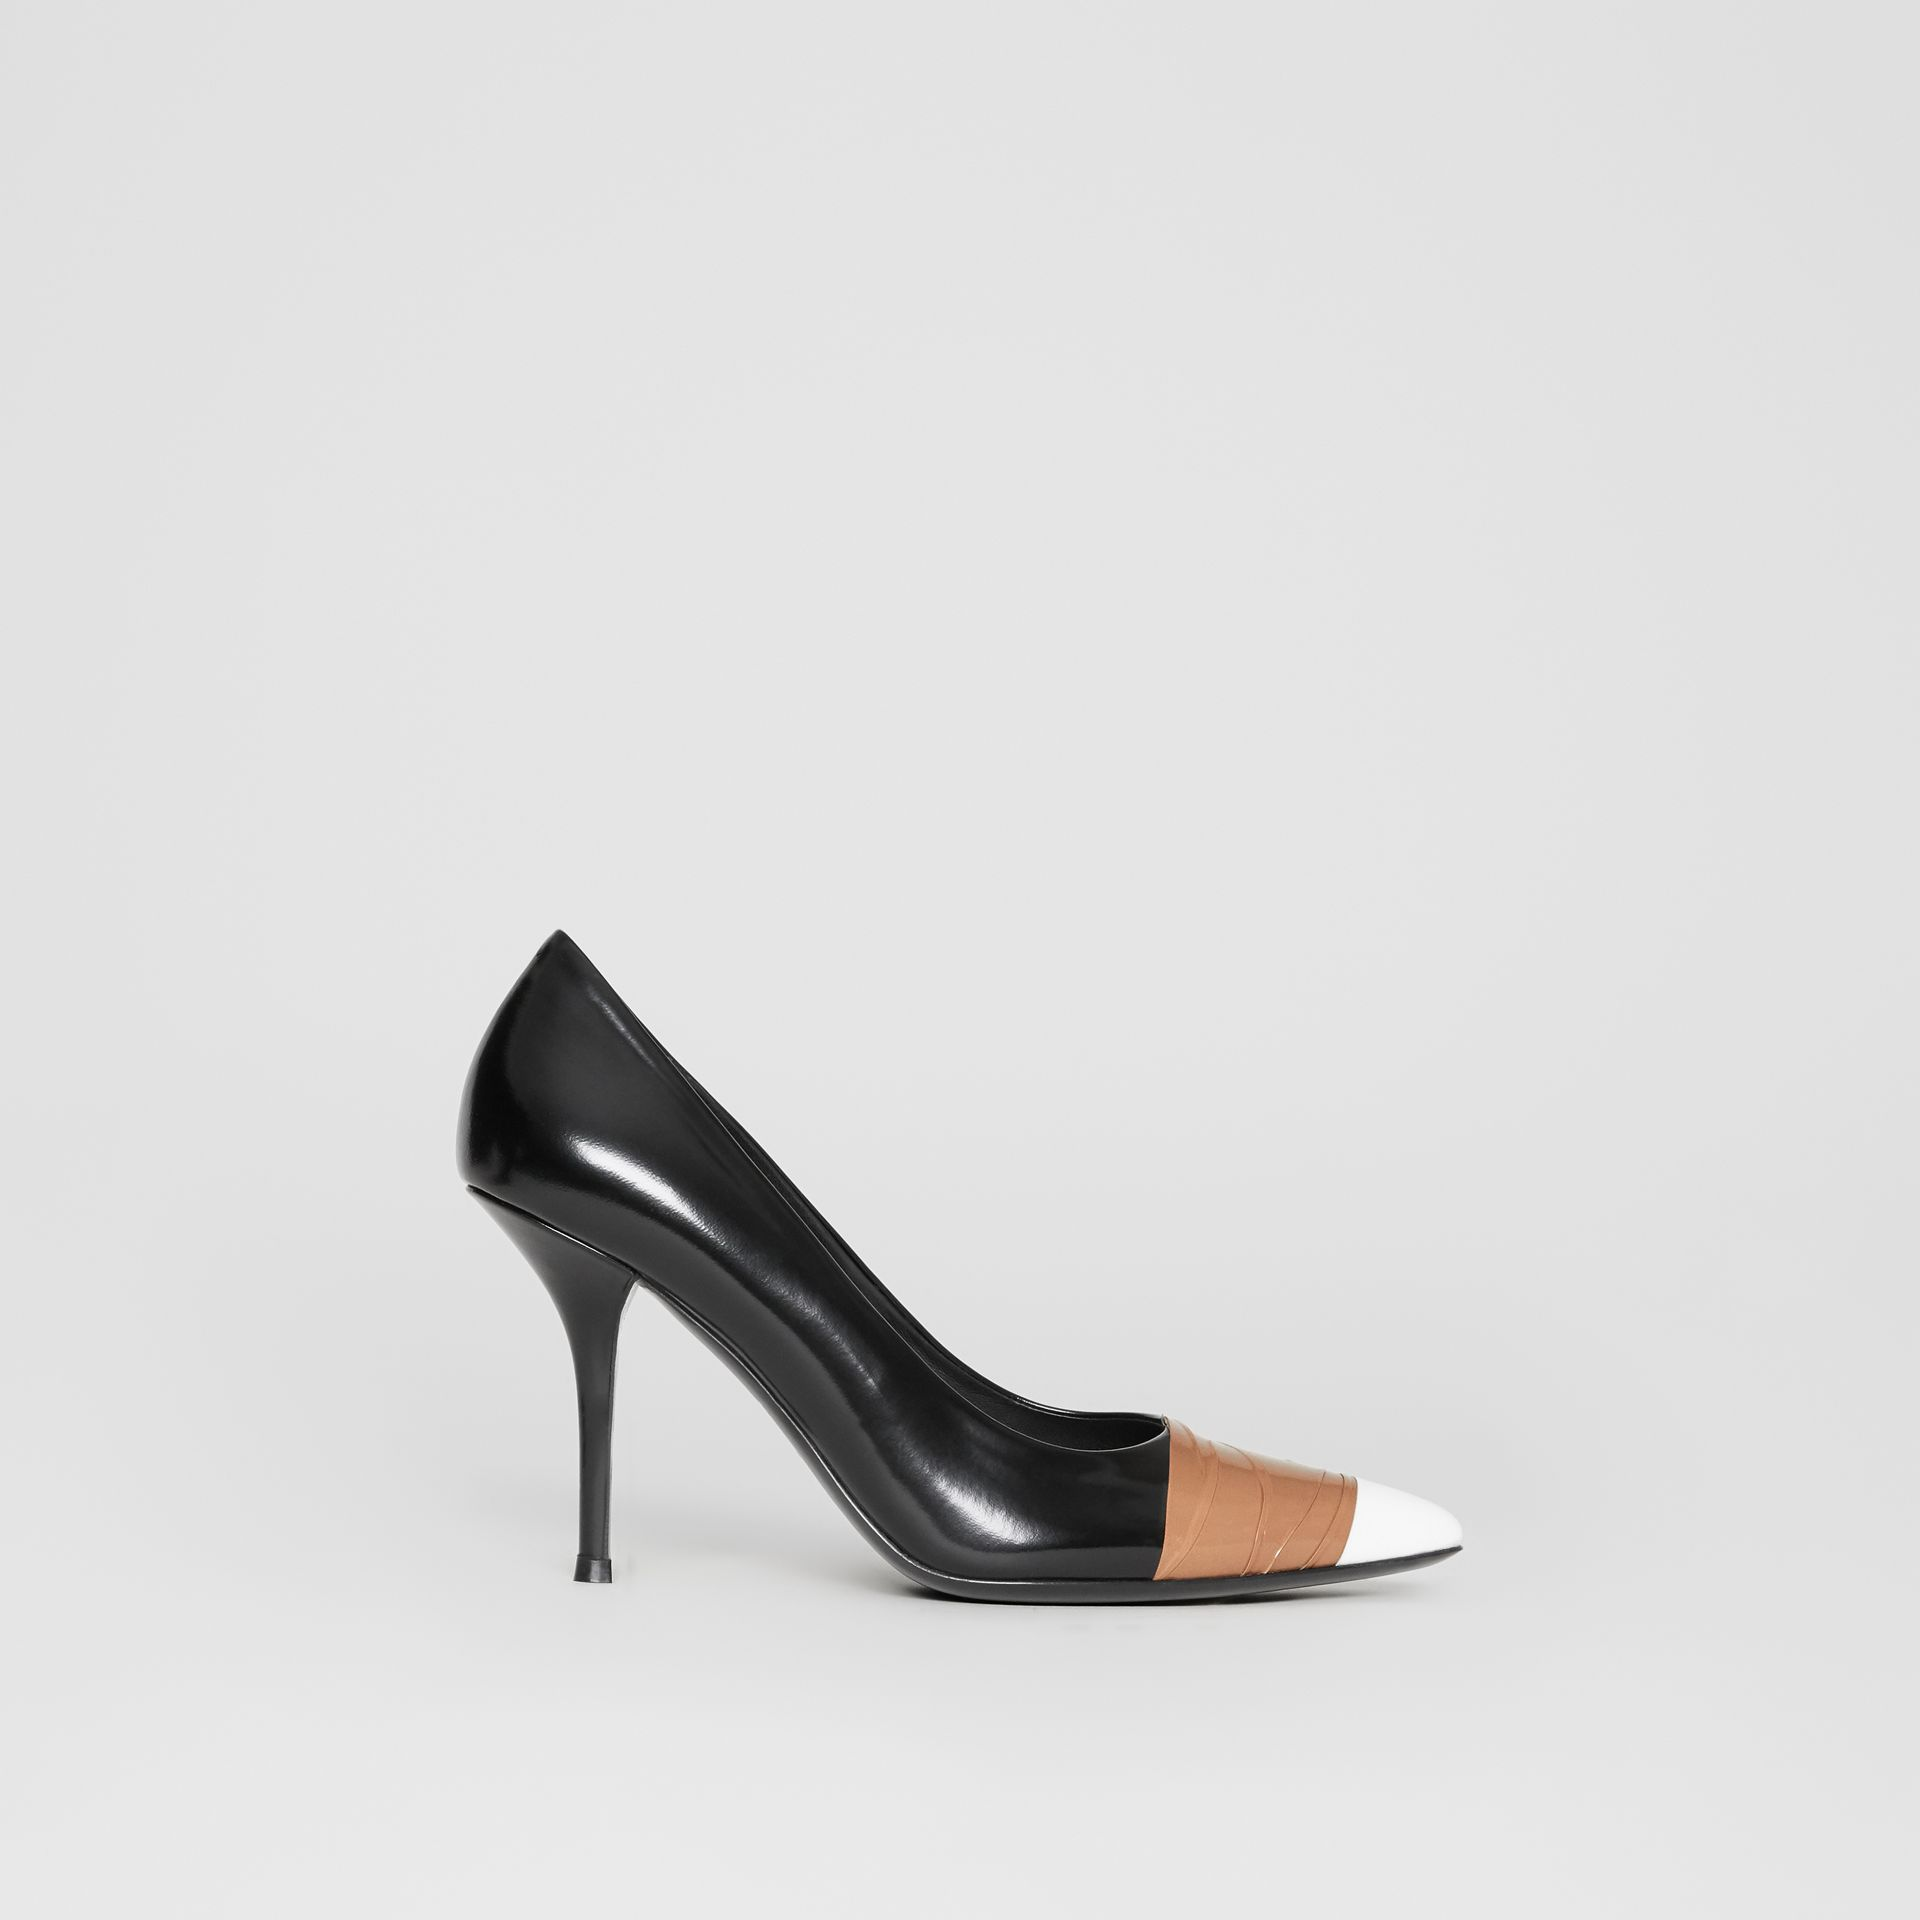 Tape Detail Leather Pumps in Black/optic White - Women | Burberry - gallery image 5